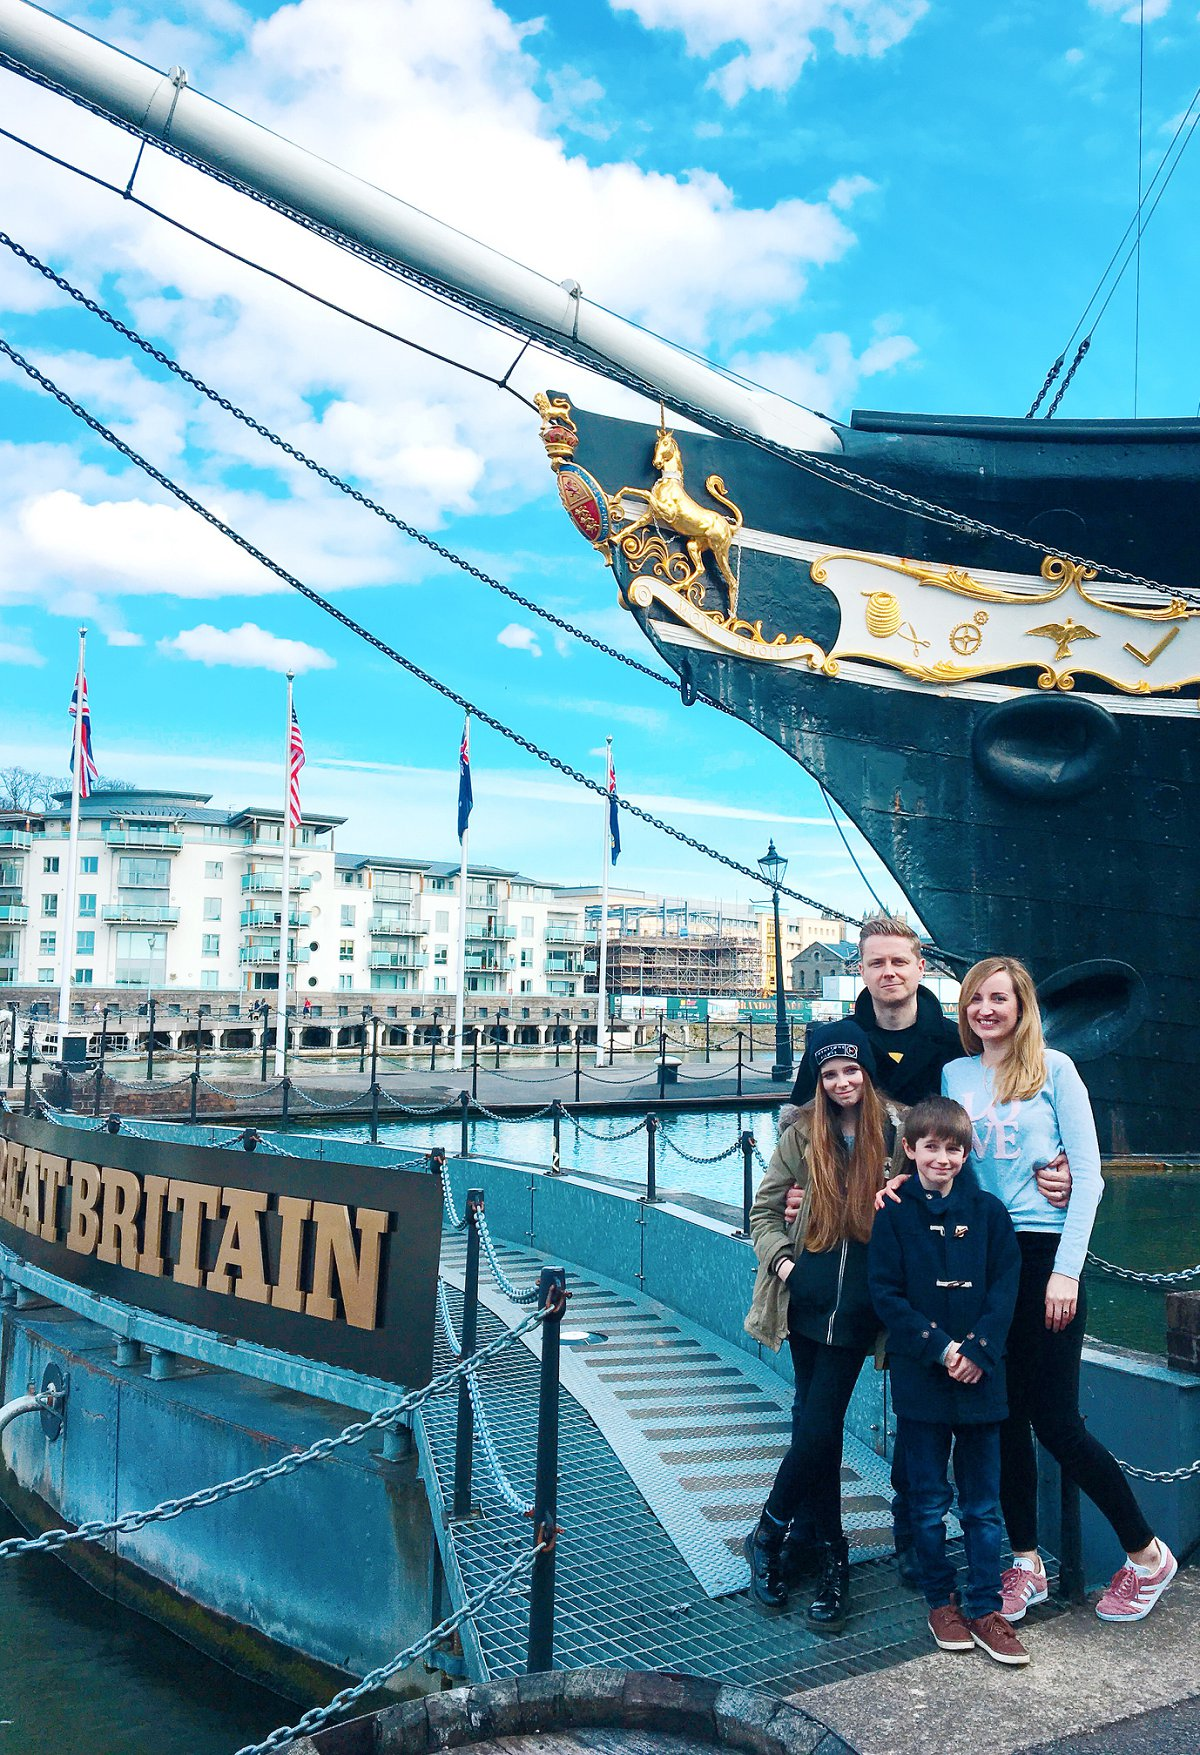 5 Family Friendly Things To Do In Bristol